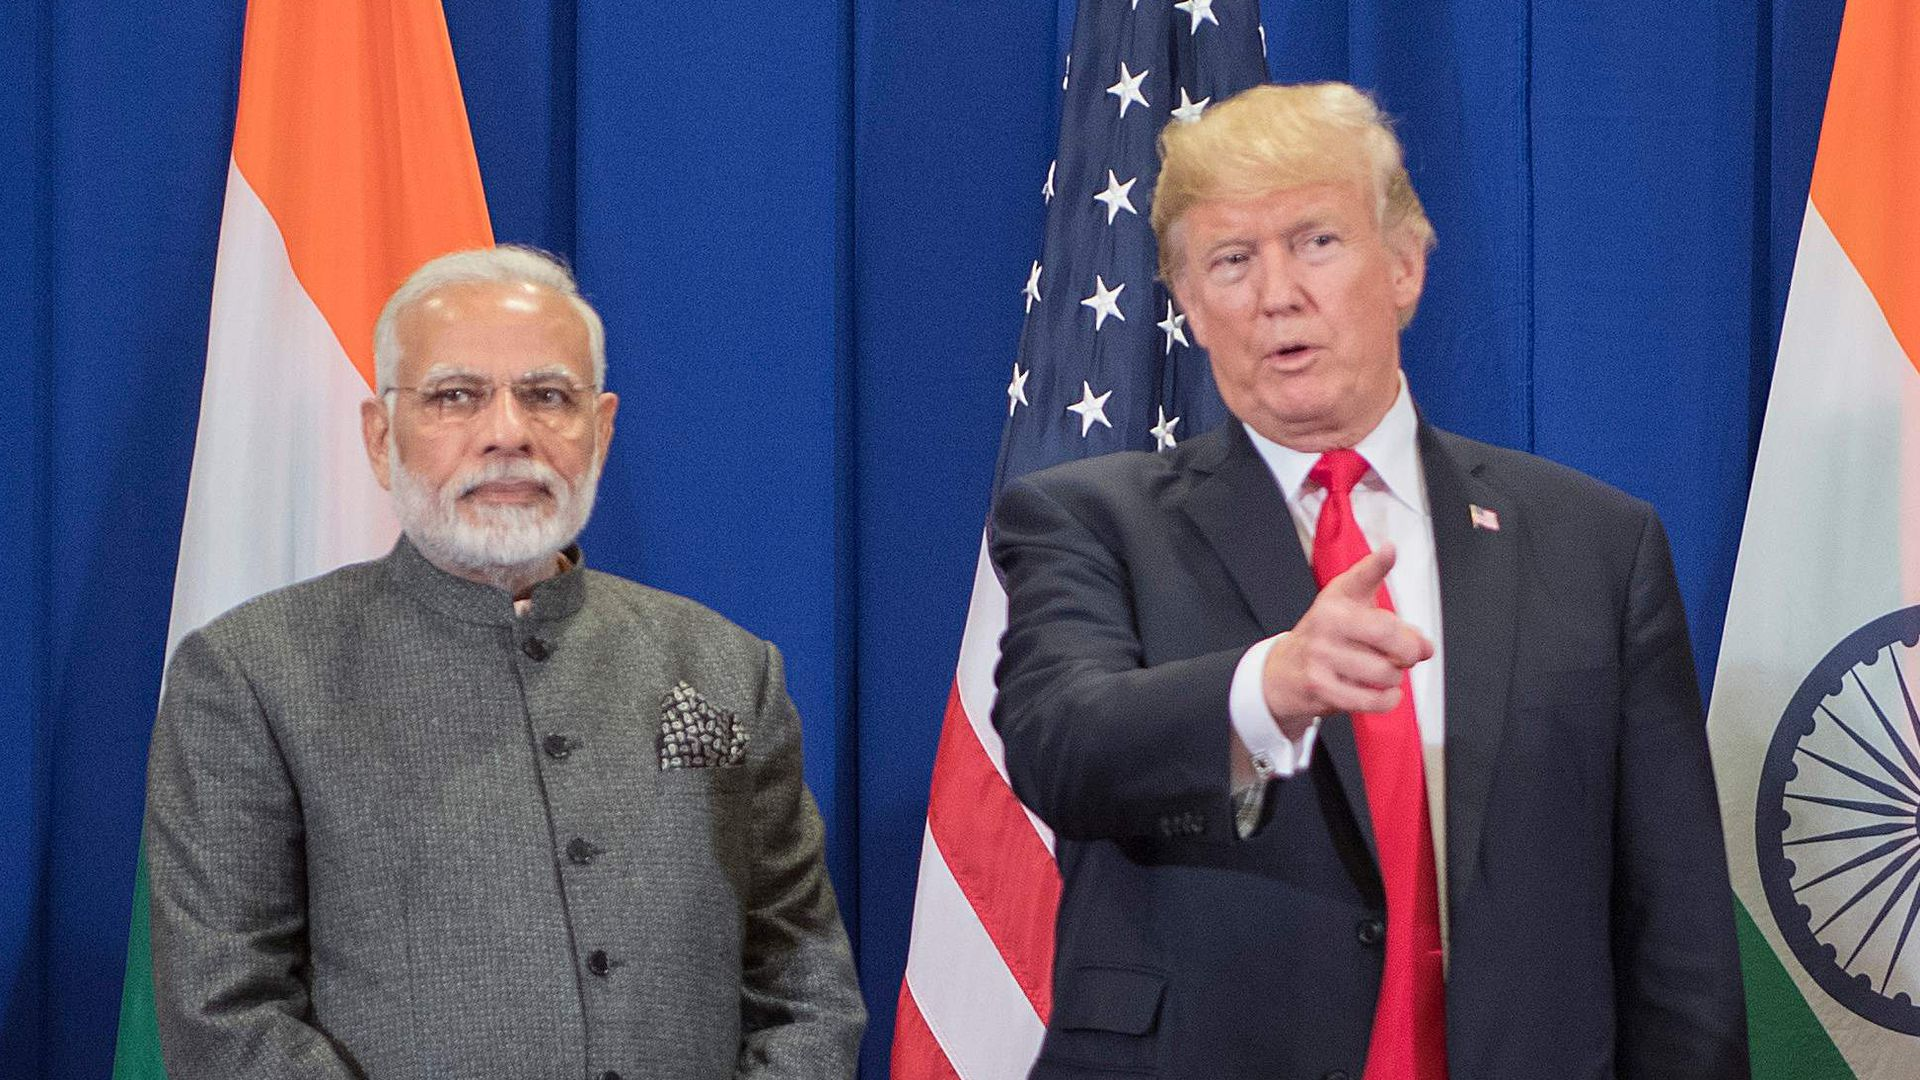 US President Donald Trump (C) speaks with Indian Prime Minister Narendra Modi on the sideline of the 31st Association of Southeast Asian Nations (ASEAN) Summit in Manila on November 13, 2017.